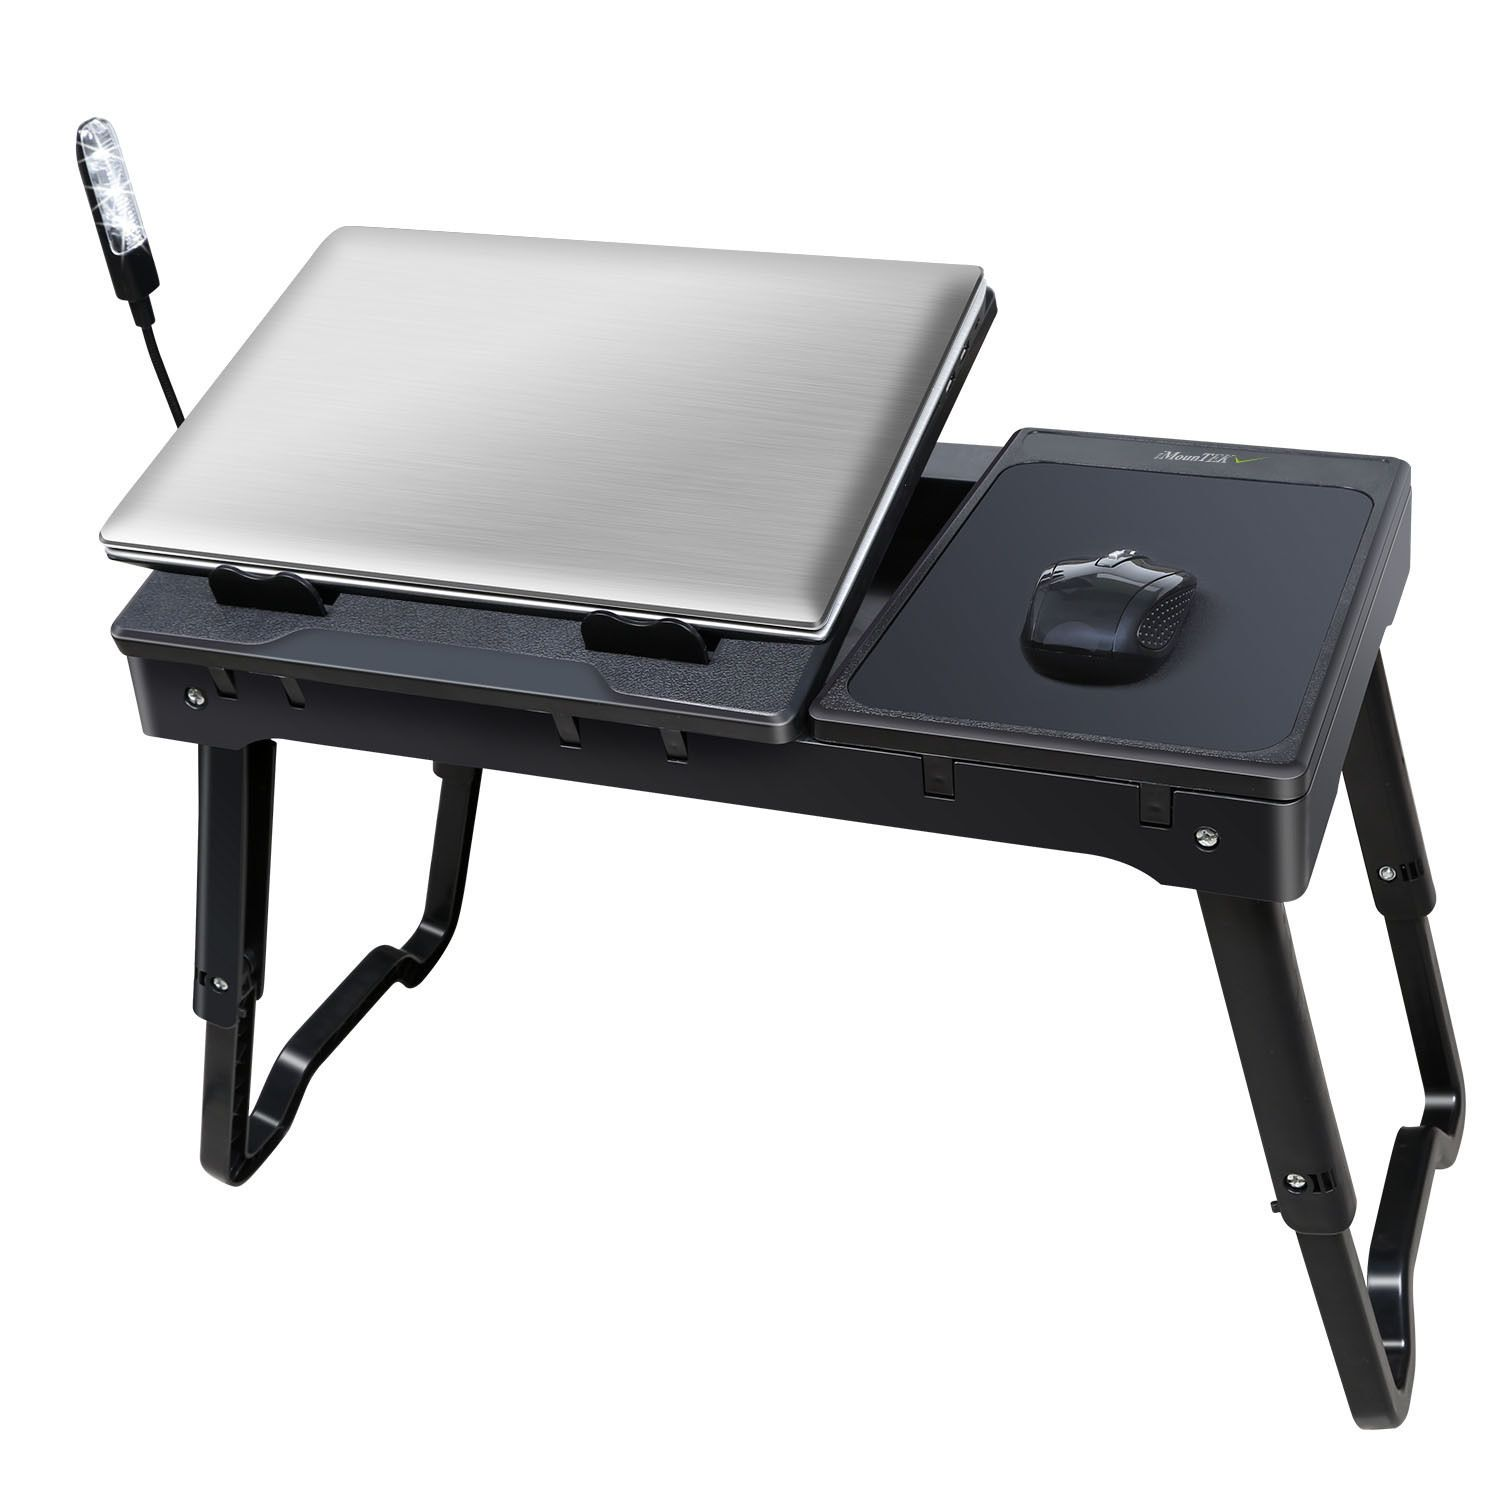 Foldable Laptop Table Tray Desk W Cooling Fan Tablet Stand Bed Sofa Couch Notebook E Mouse Adjule Lightweight And Portable 3 Led Lamp Brand